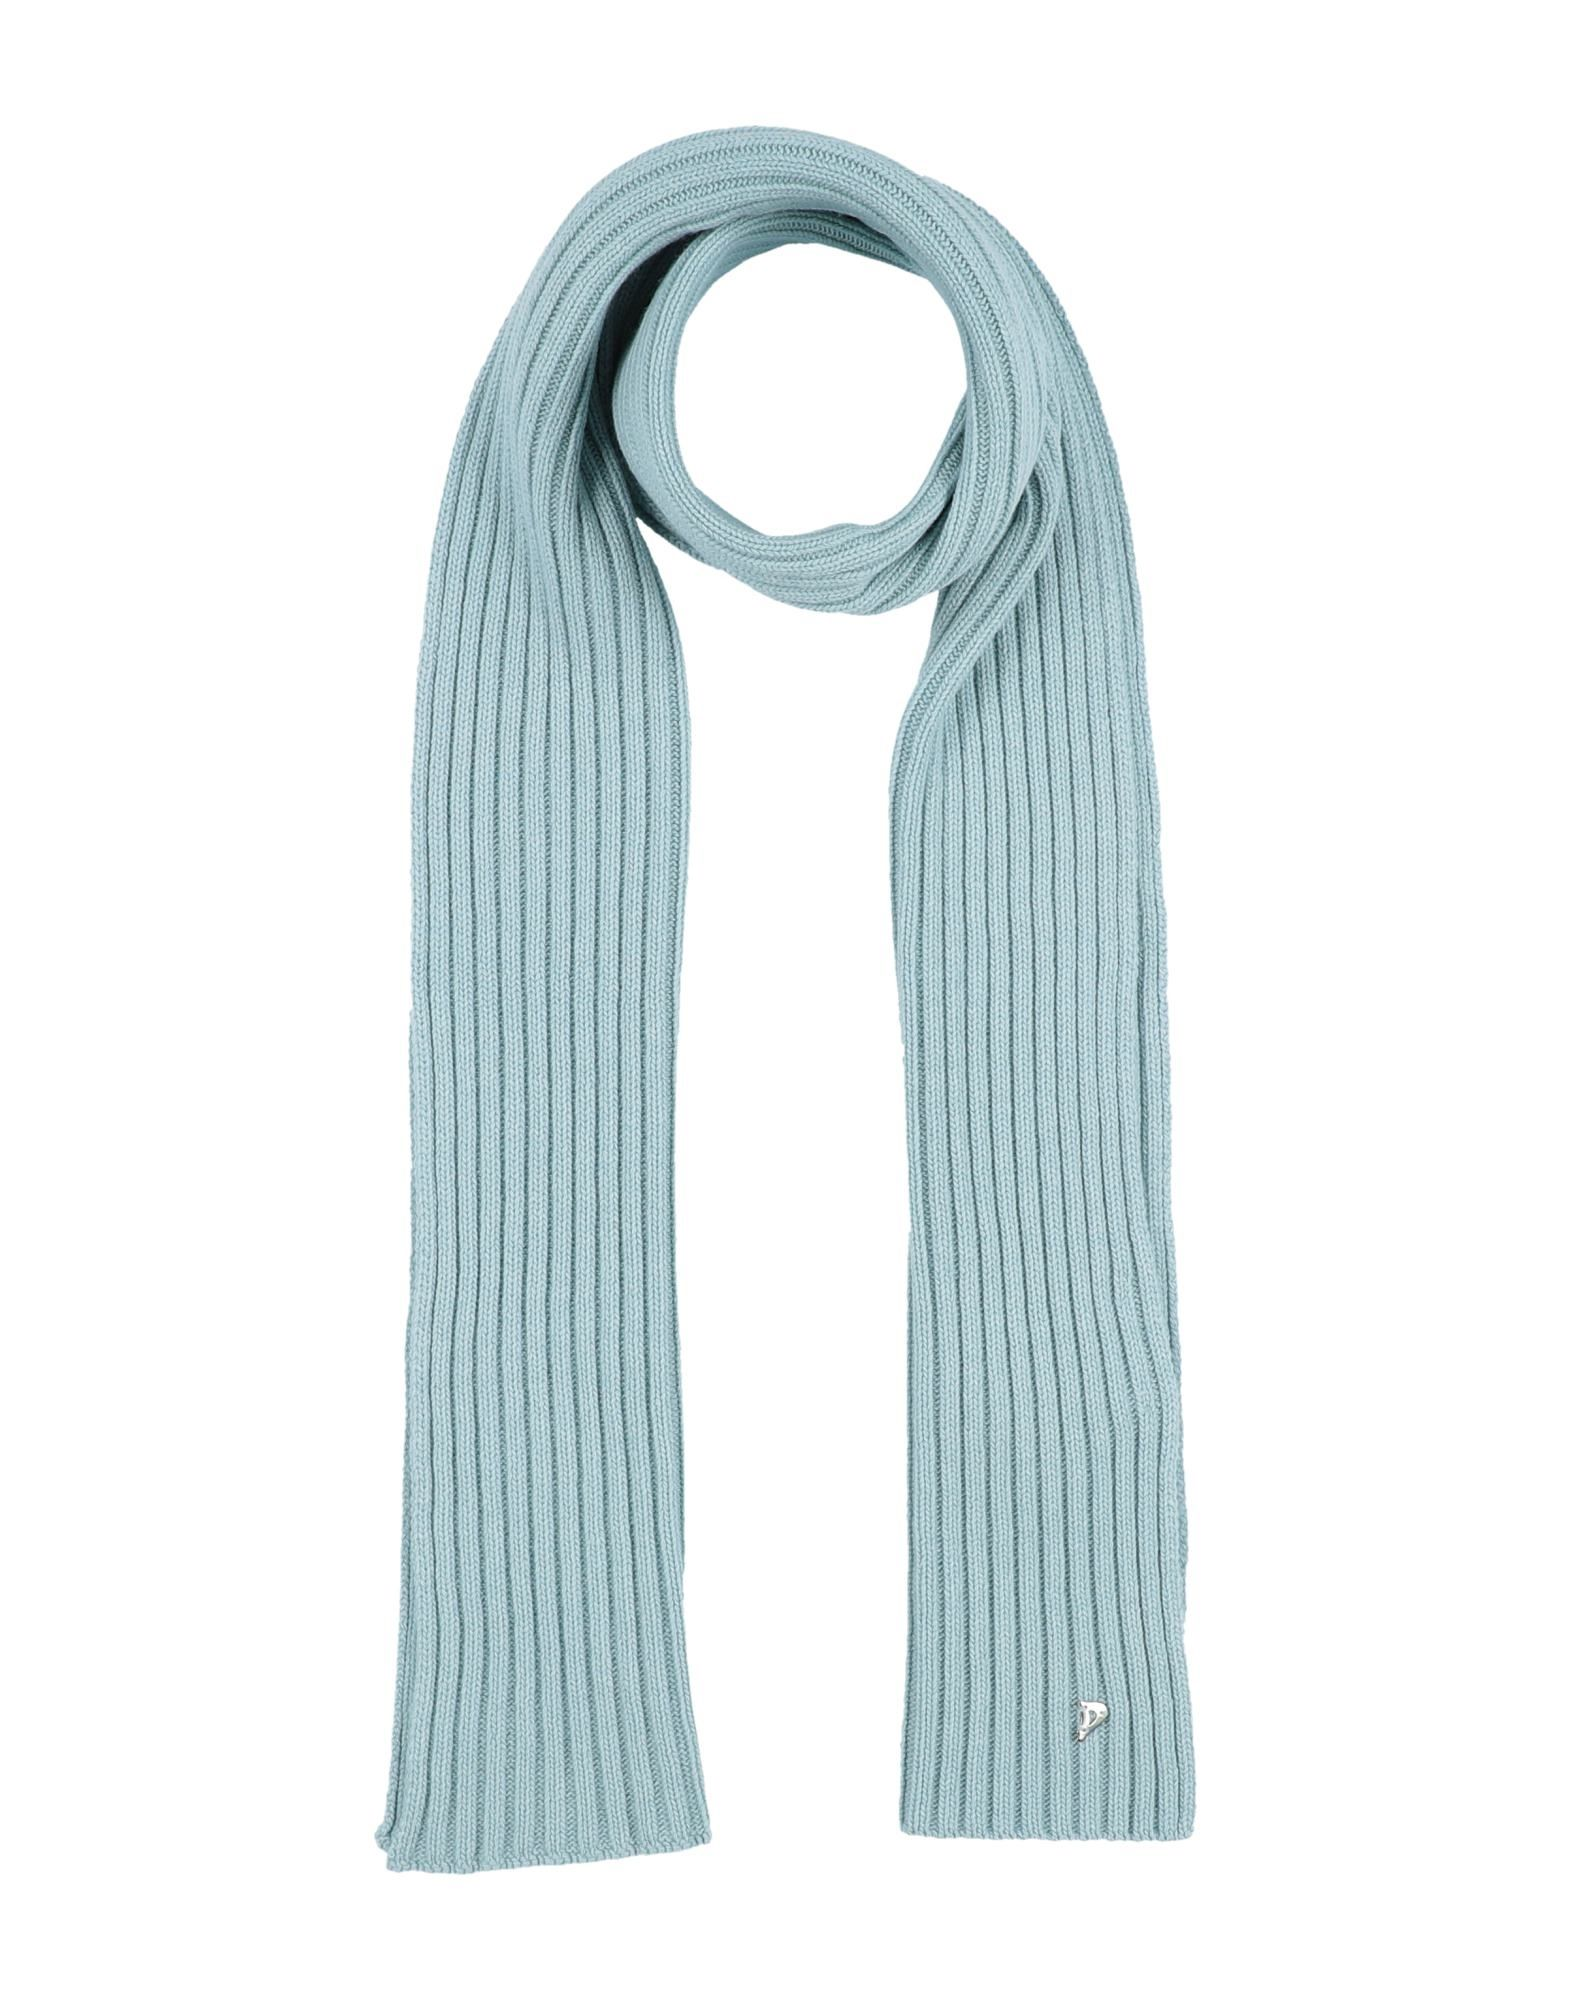 DONDUP Scarves. knitted, no appliqués, basic solid color, medium-weight knit, hand wash, dry cleanable, iron at 110degree c max, do not bleach, do not tumble dry. 40% Merino Wool, 30% Viscose, 20% Polyamide, 10% Cashmere